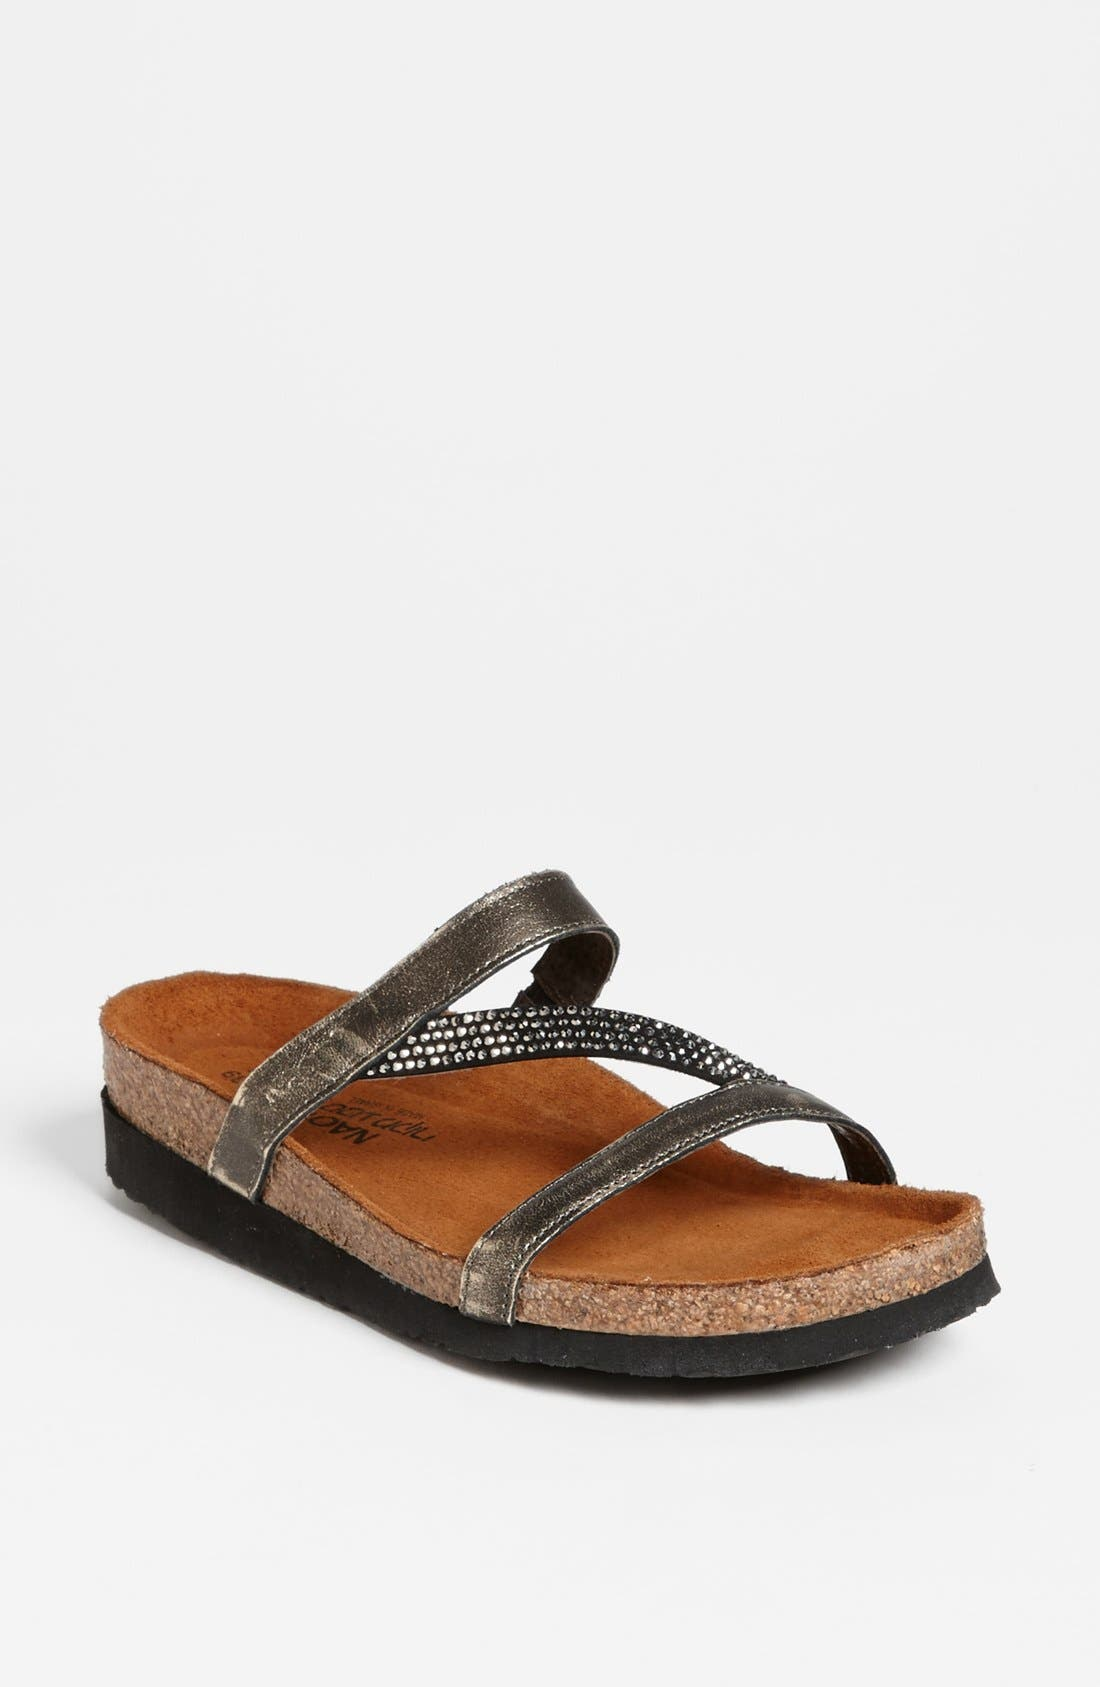 'Hawaii' Sandal,                         Main,                         color, SILVER LEATHER